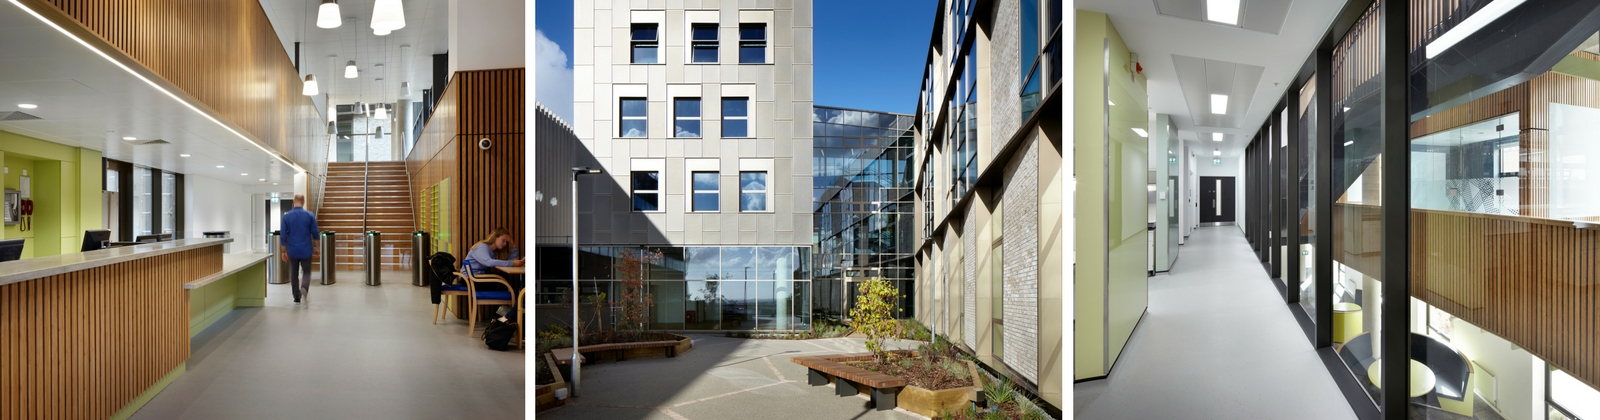 The Living Systems Institute   University of Exeter   Michelmores Property Awards